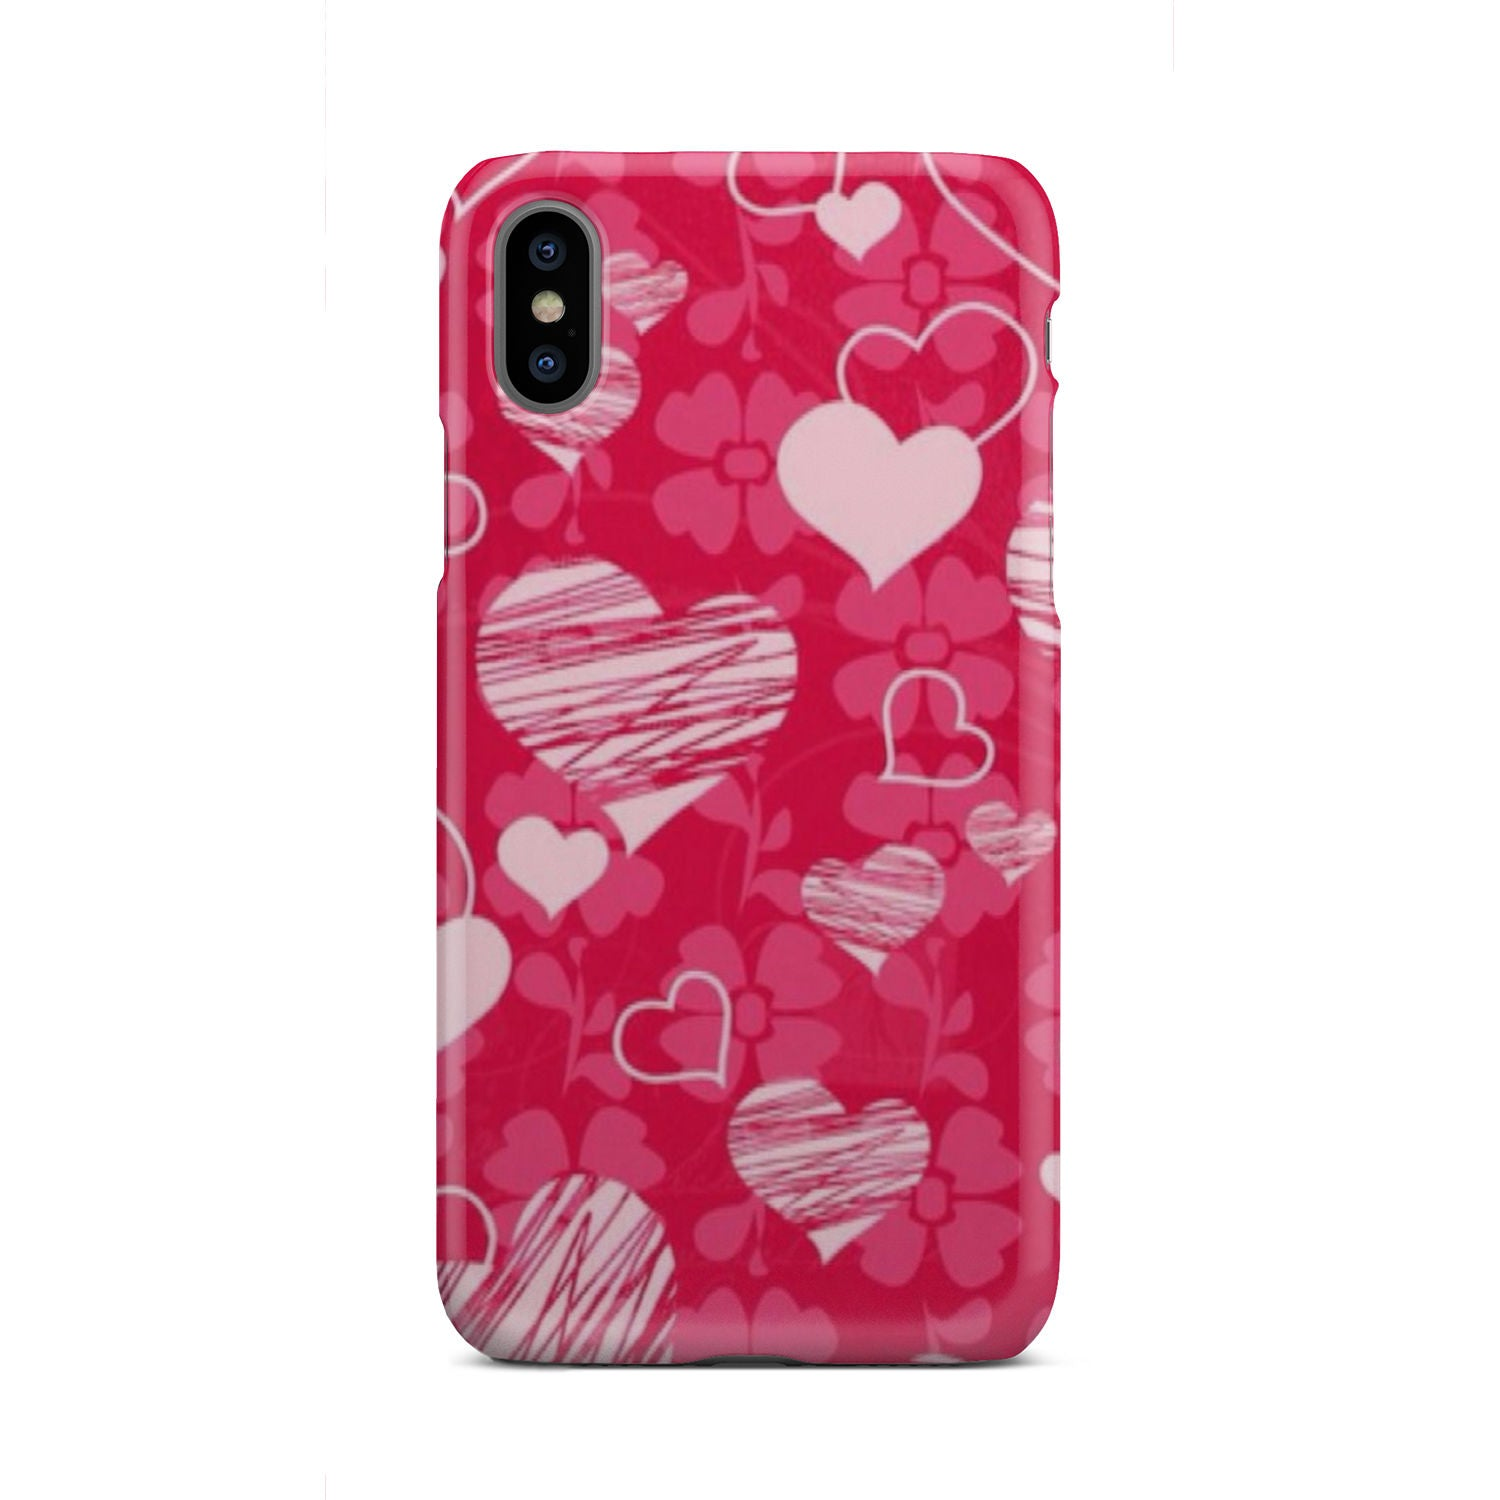 Hearts and Luck - Phone case - fastandtune